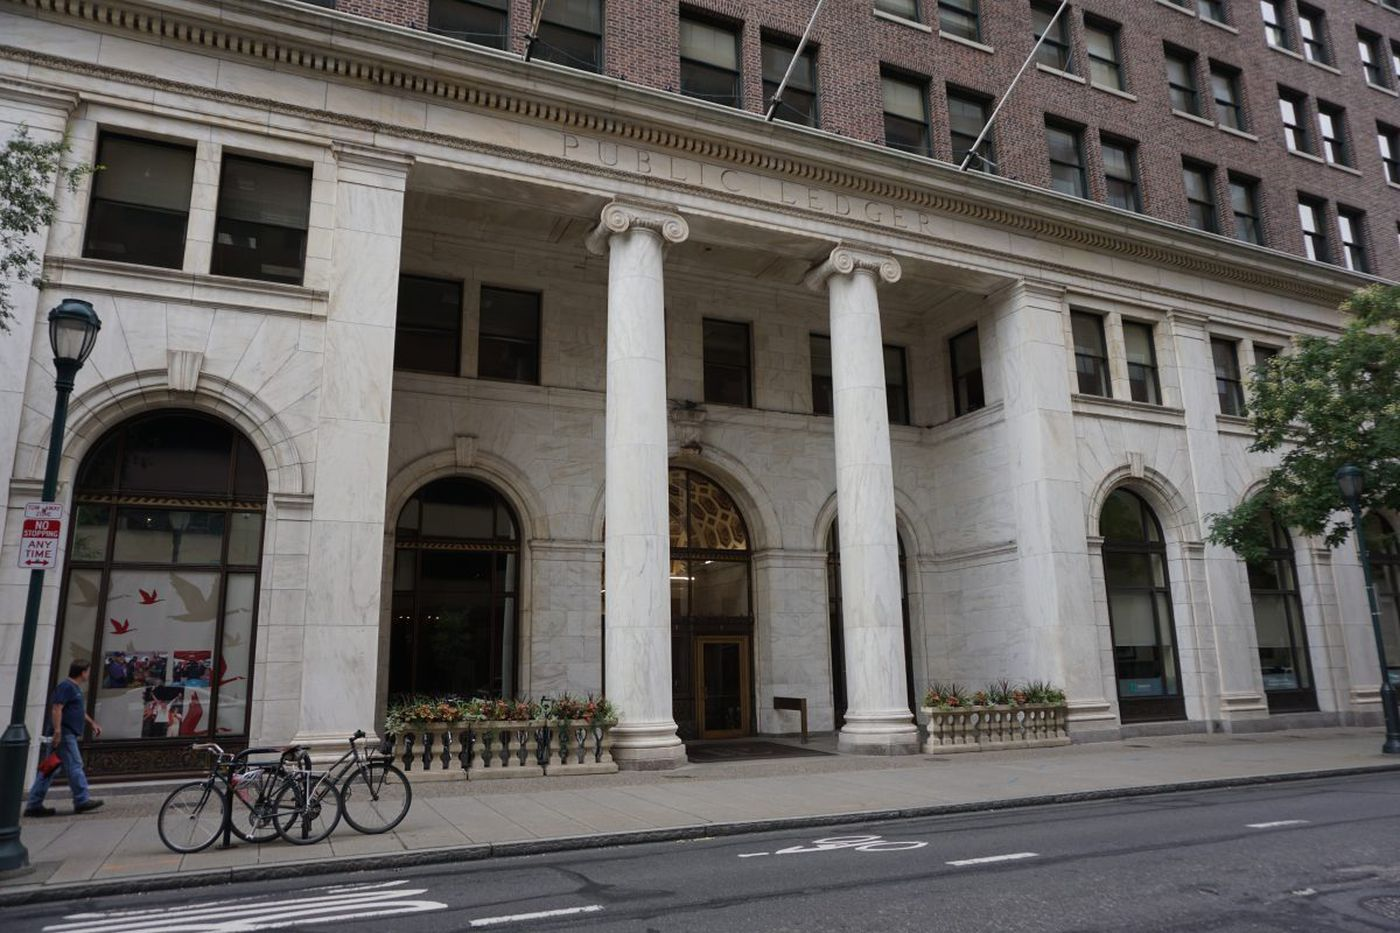 Public Ledger building owner sells off section of historic structure in Philly